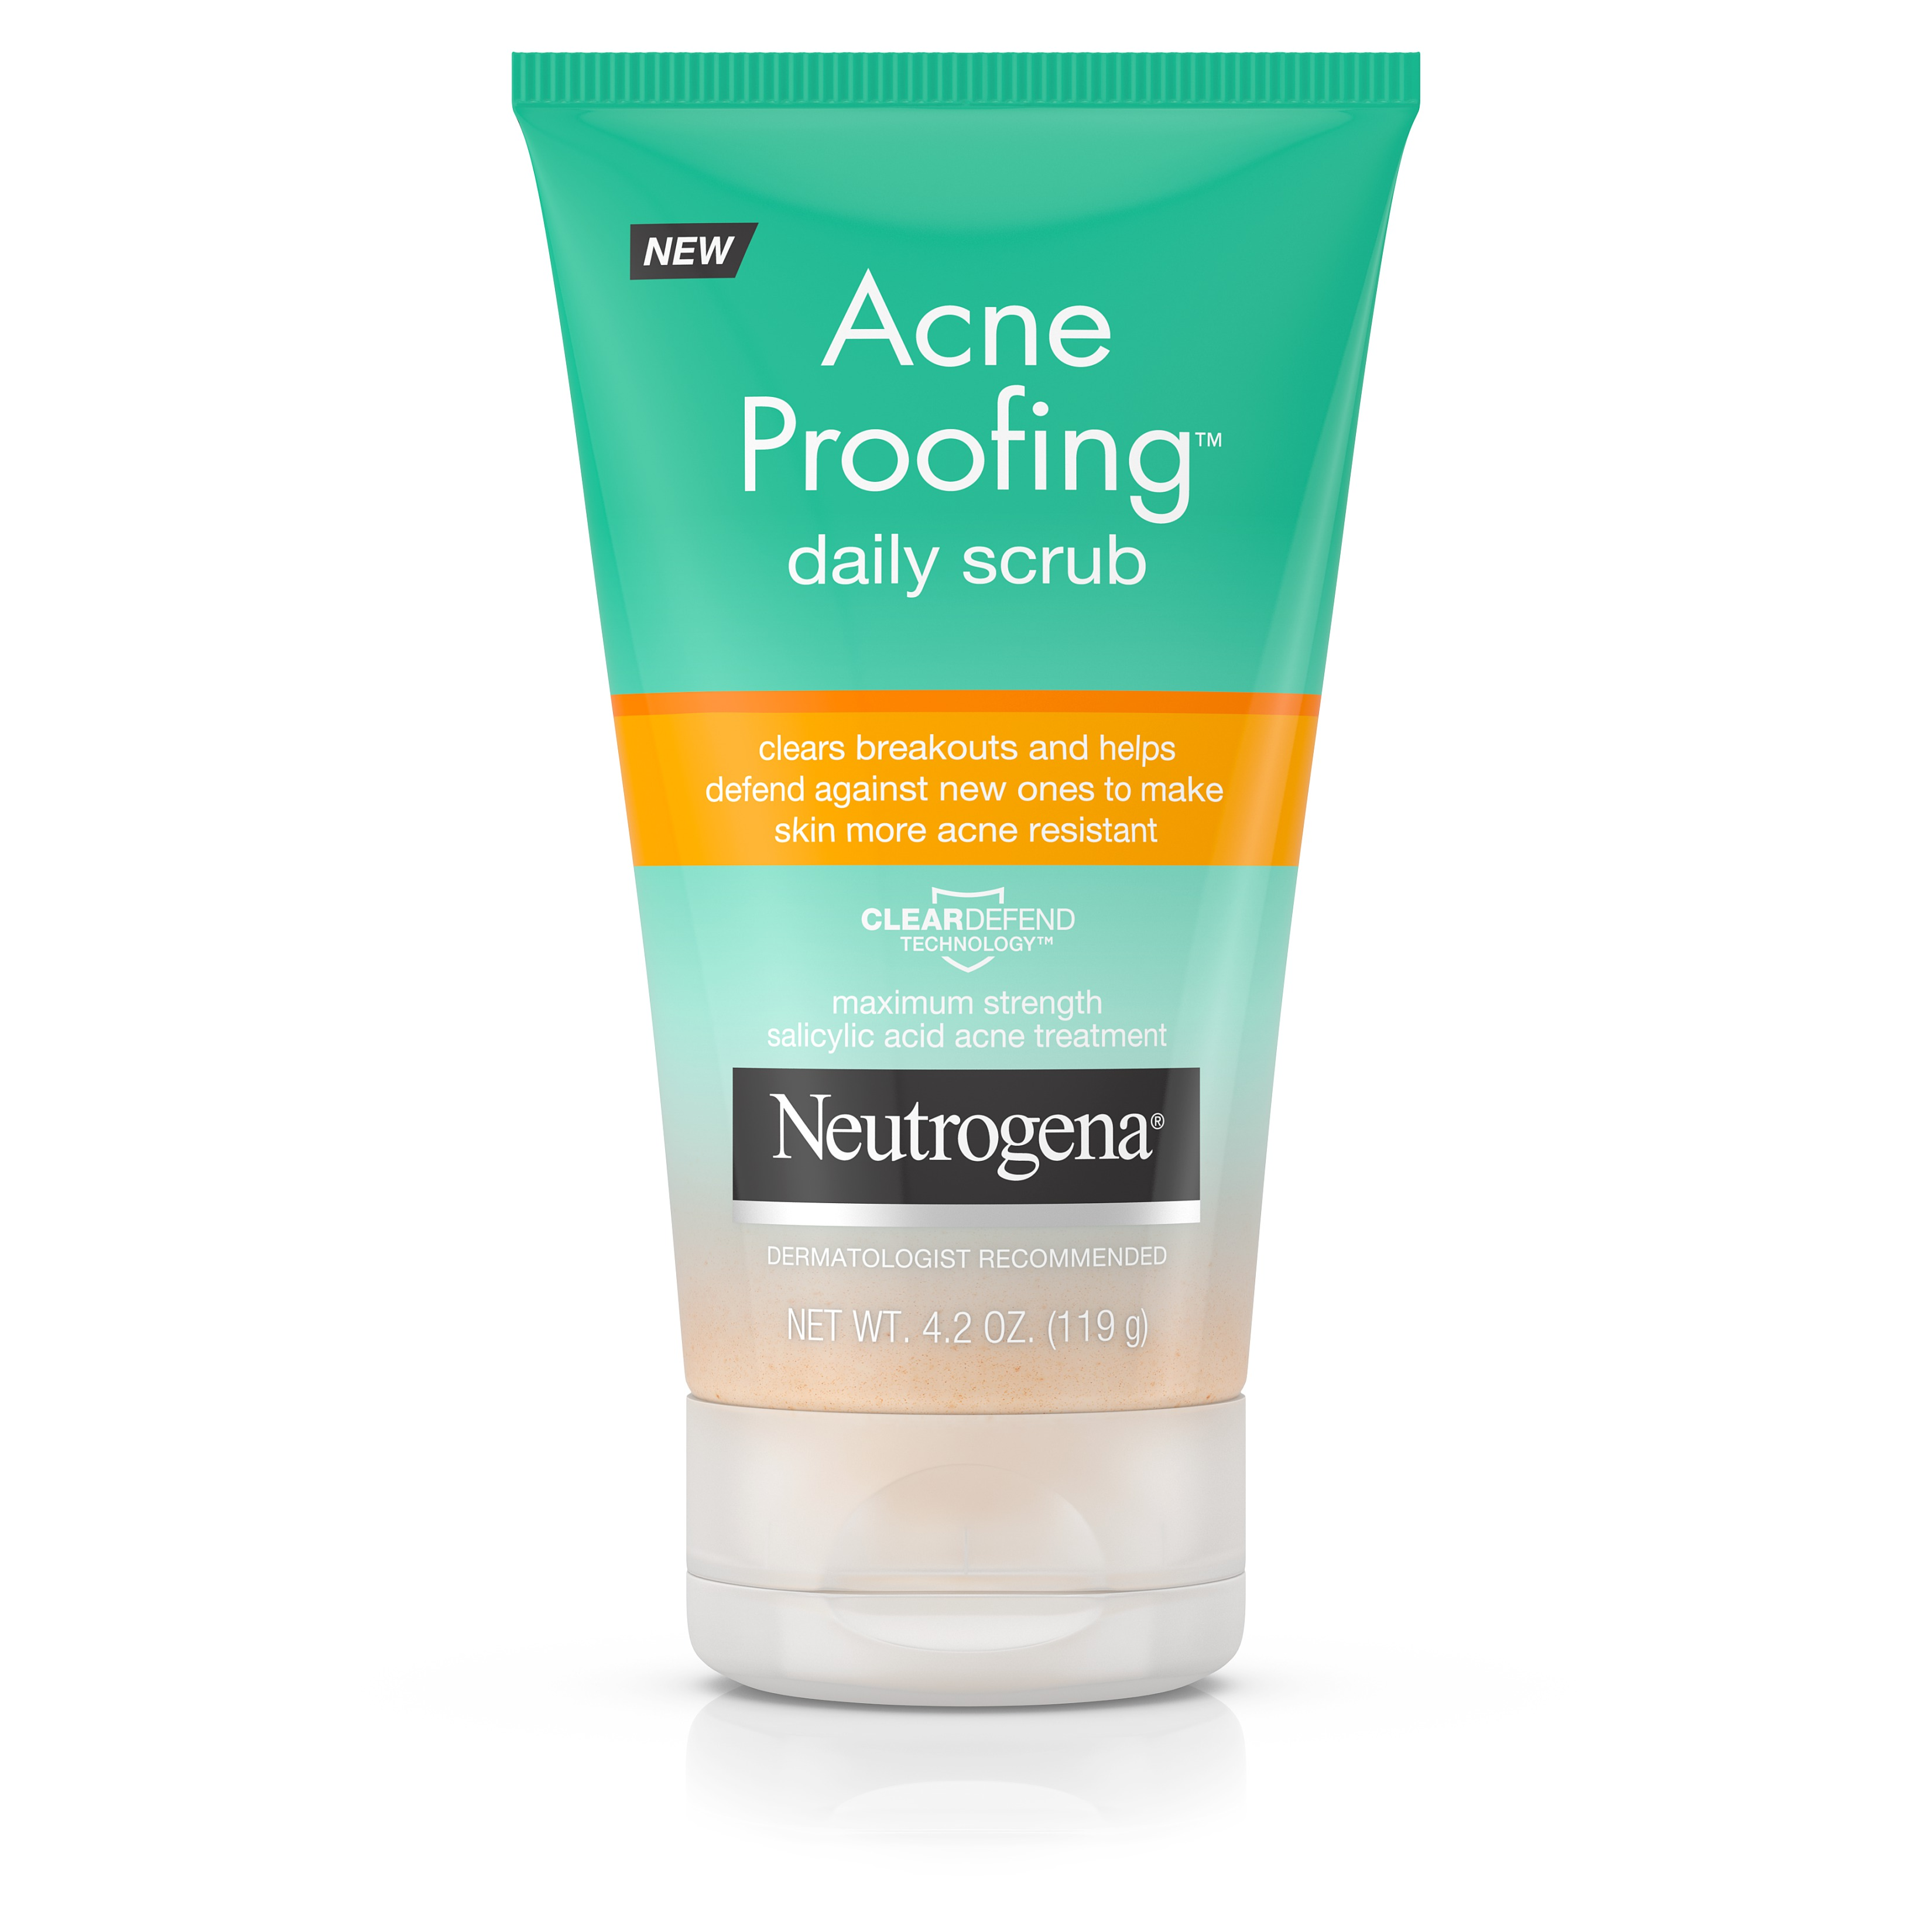 Neutrogena Acne Proofing Exfoliating Facial Scrub, 4.2 oz